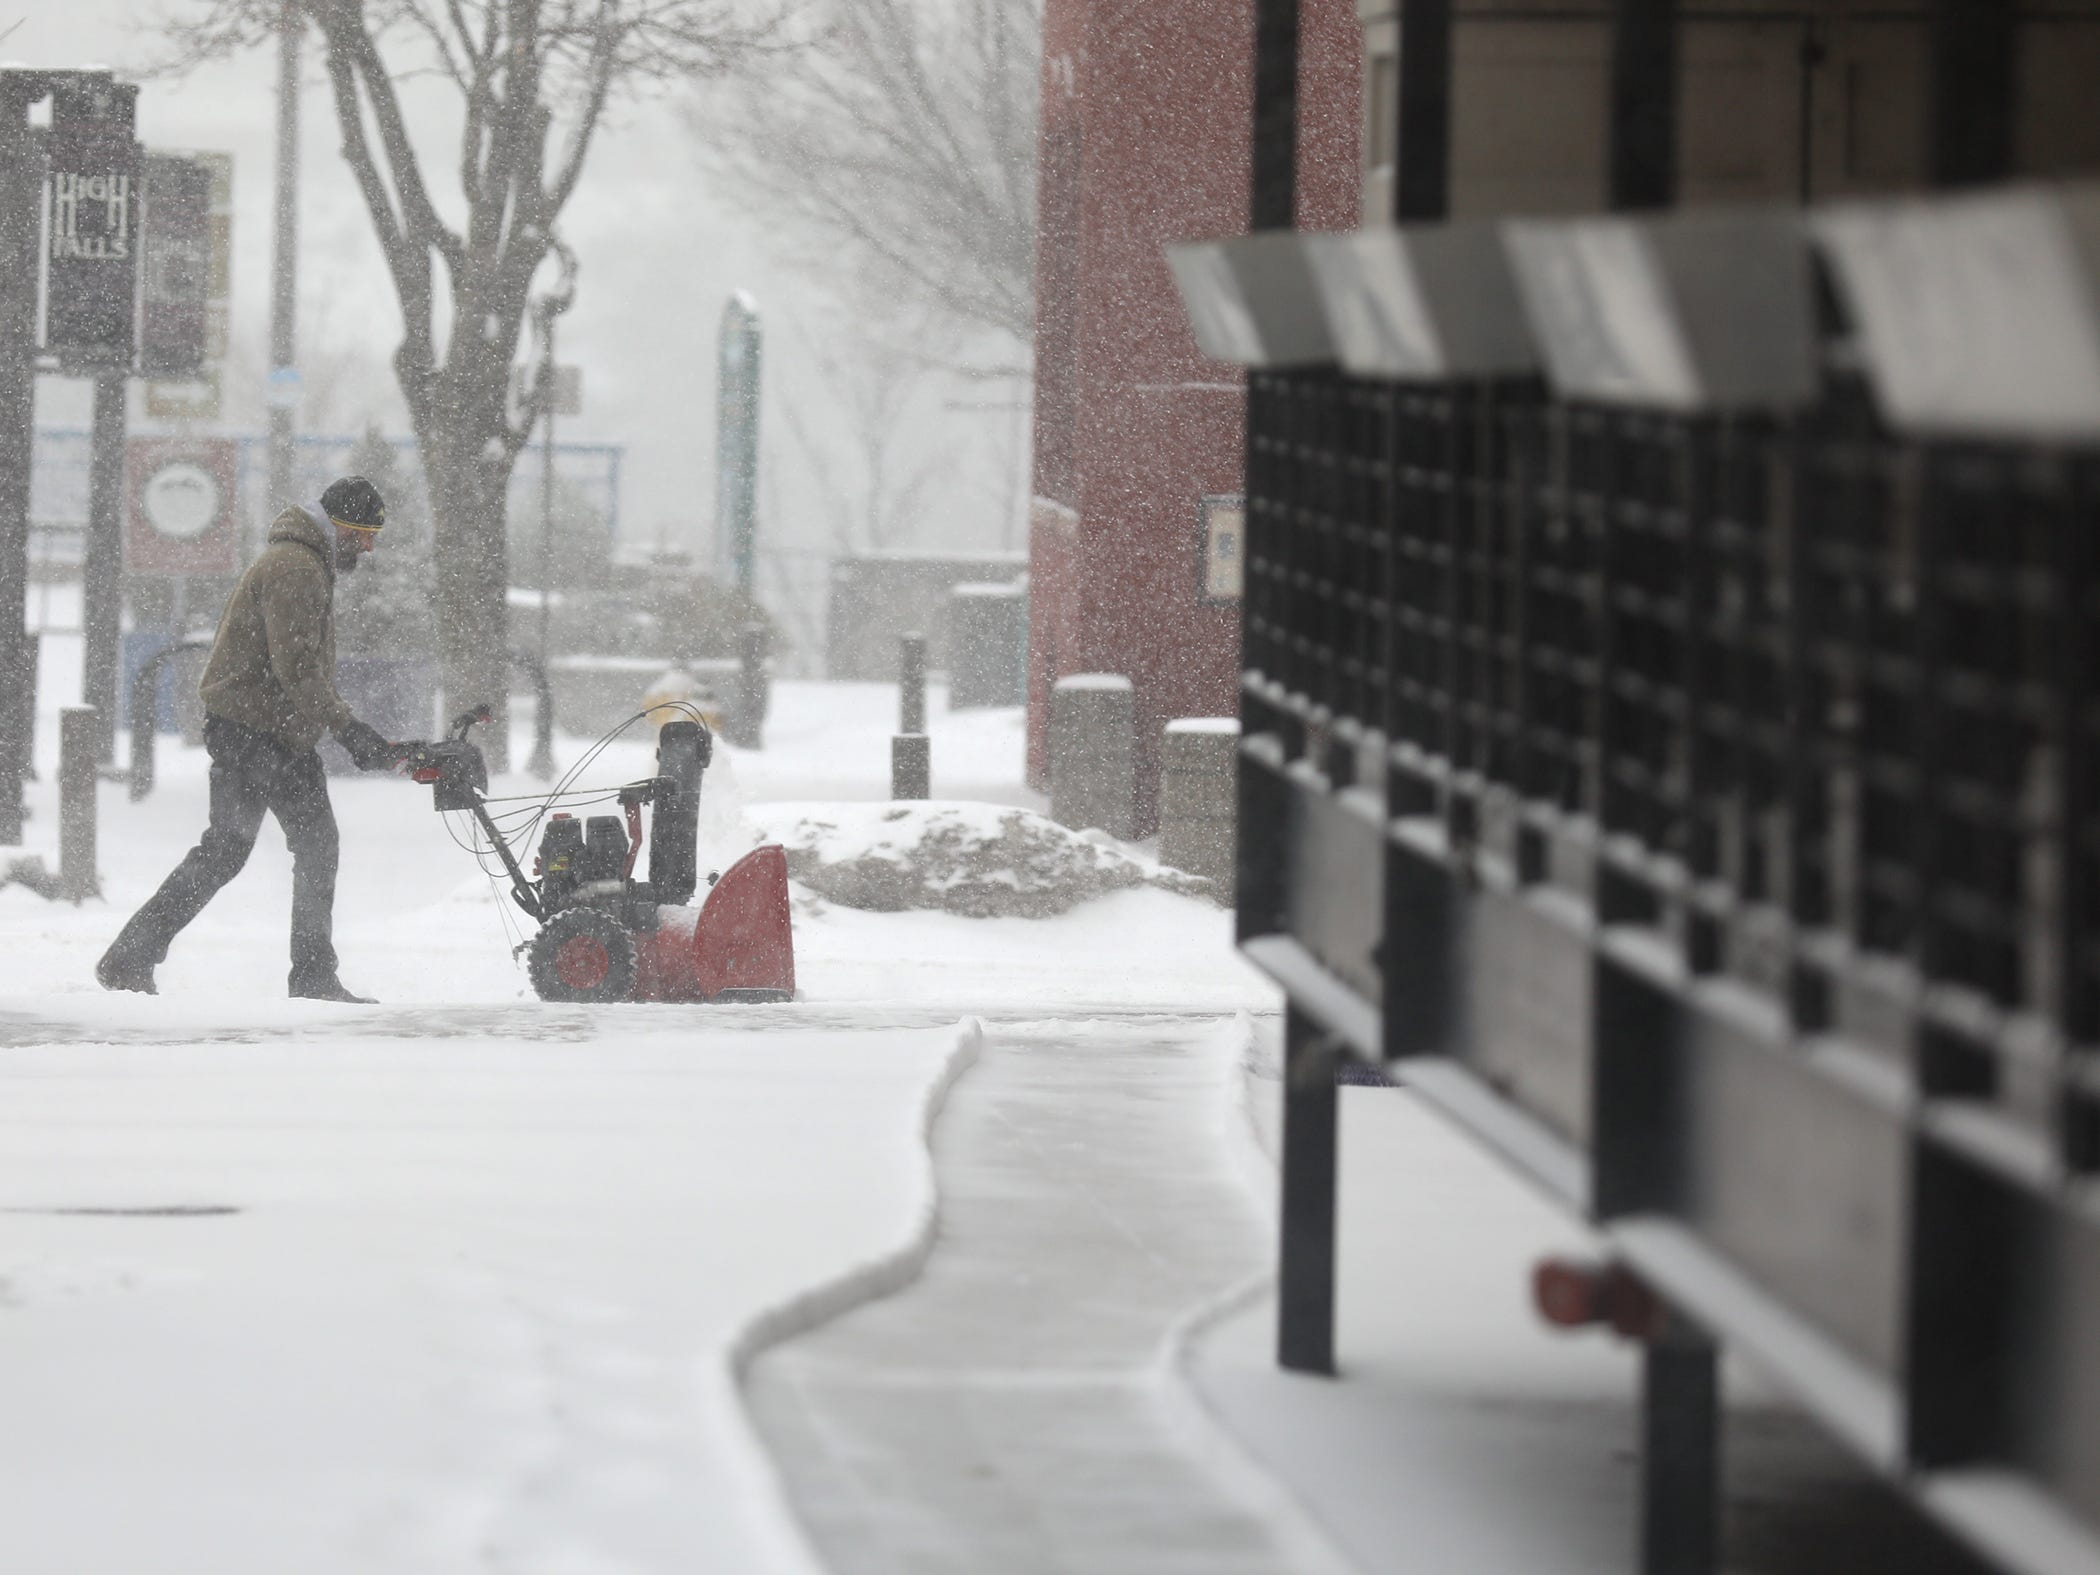 Snow came down quickly Tuesday morning making the day's commute slow with the slippery. roads.  Two snow blowers were used to clear the sidewalk around the building on Platt and Mill Sts.